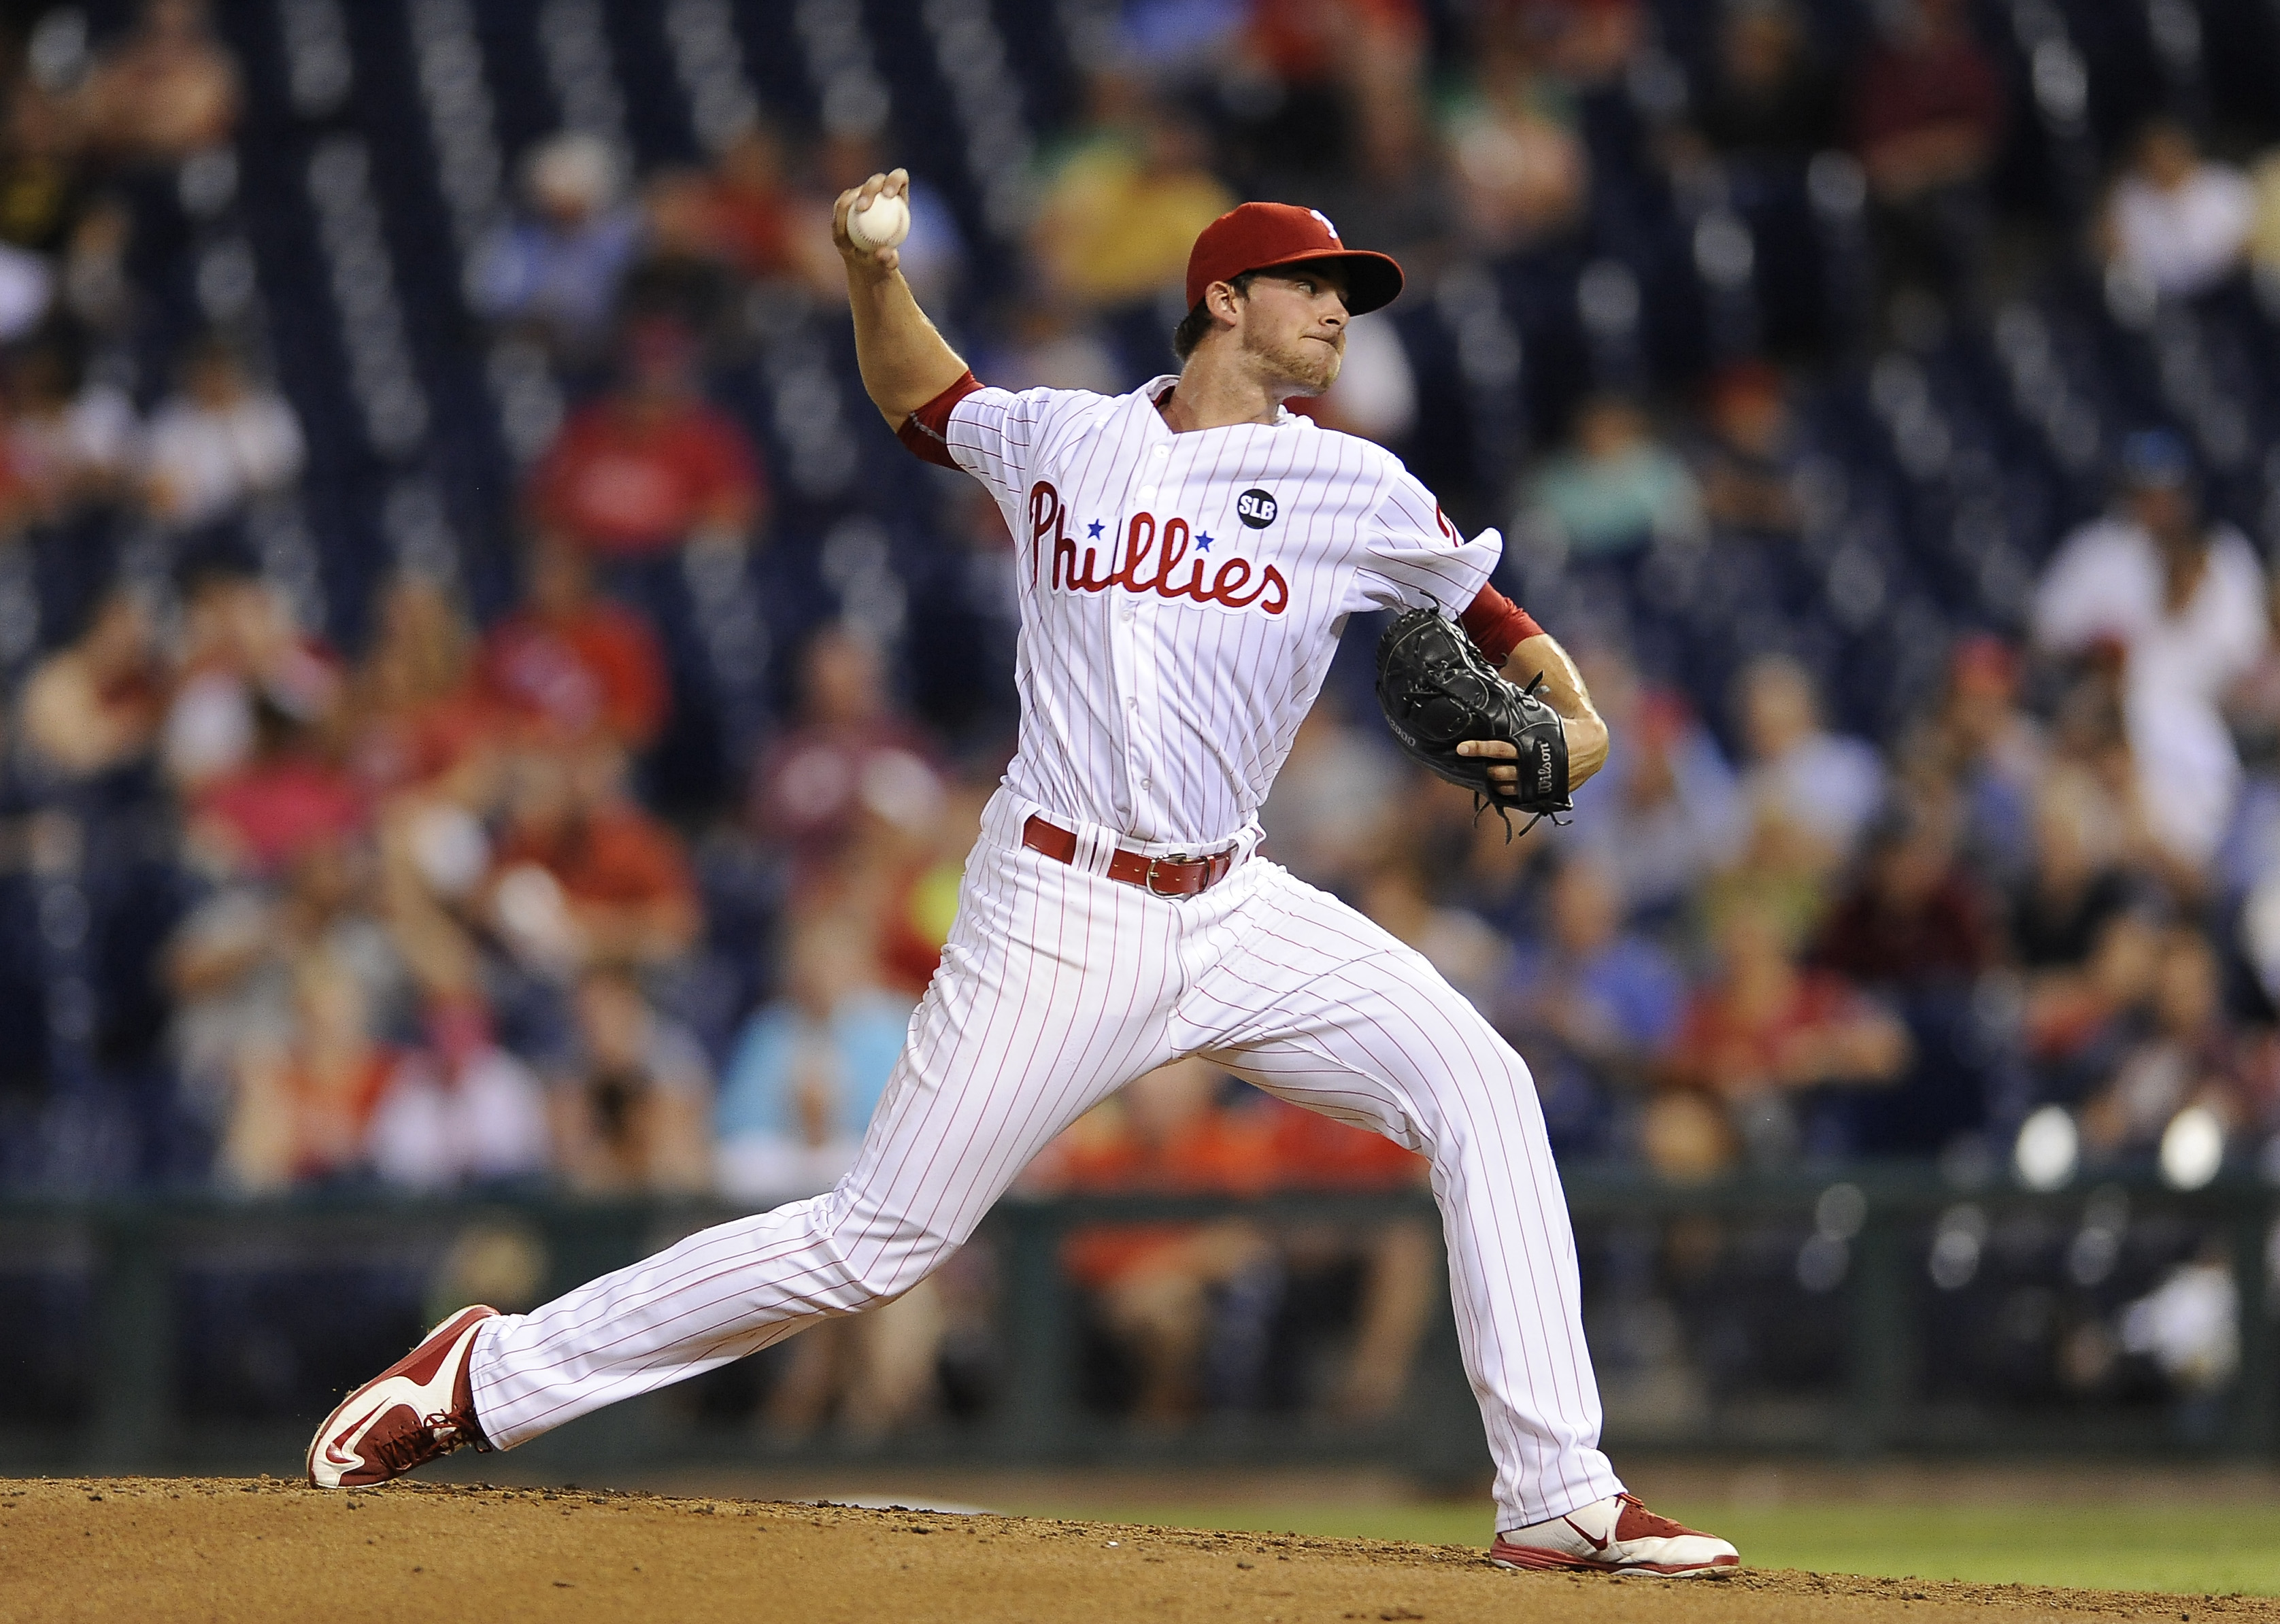 Philadelphia Phillies starting pitcher Aaron Nola throws in the third inning of a baseball game against the Atlanta Braves, Tuesday, Sept. 8, 2015, in Philadelphia. (AP Photo/Michael Perez)